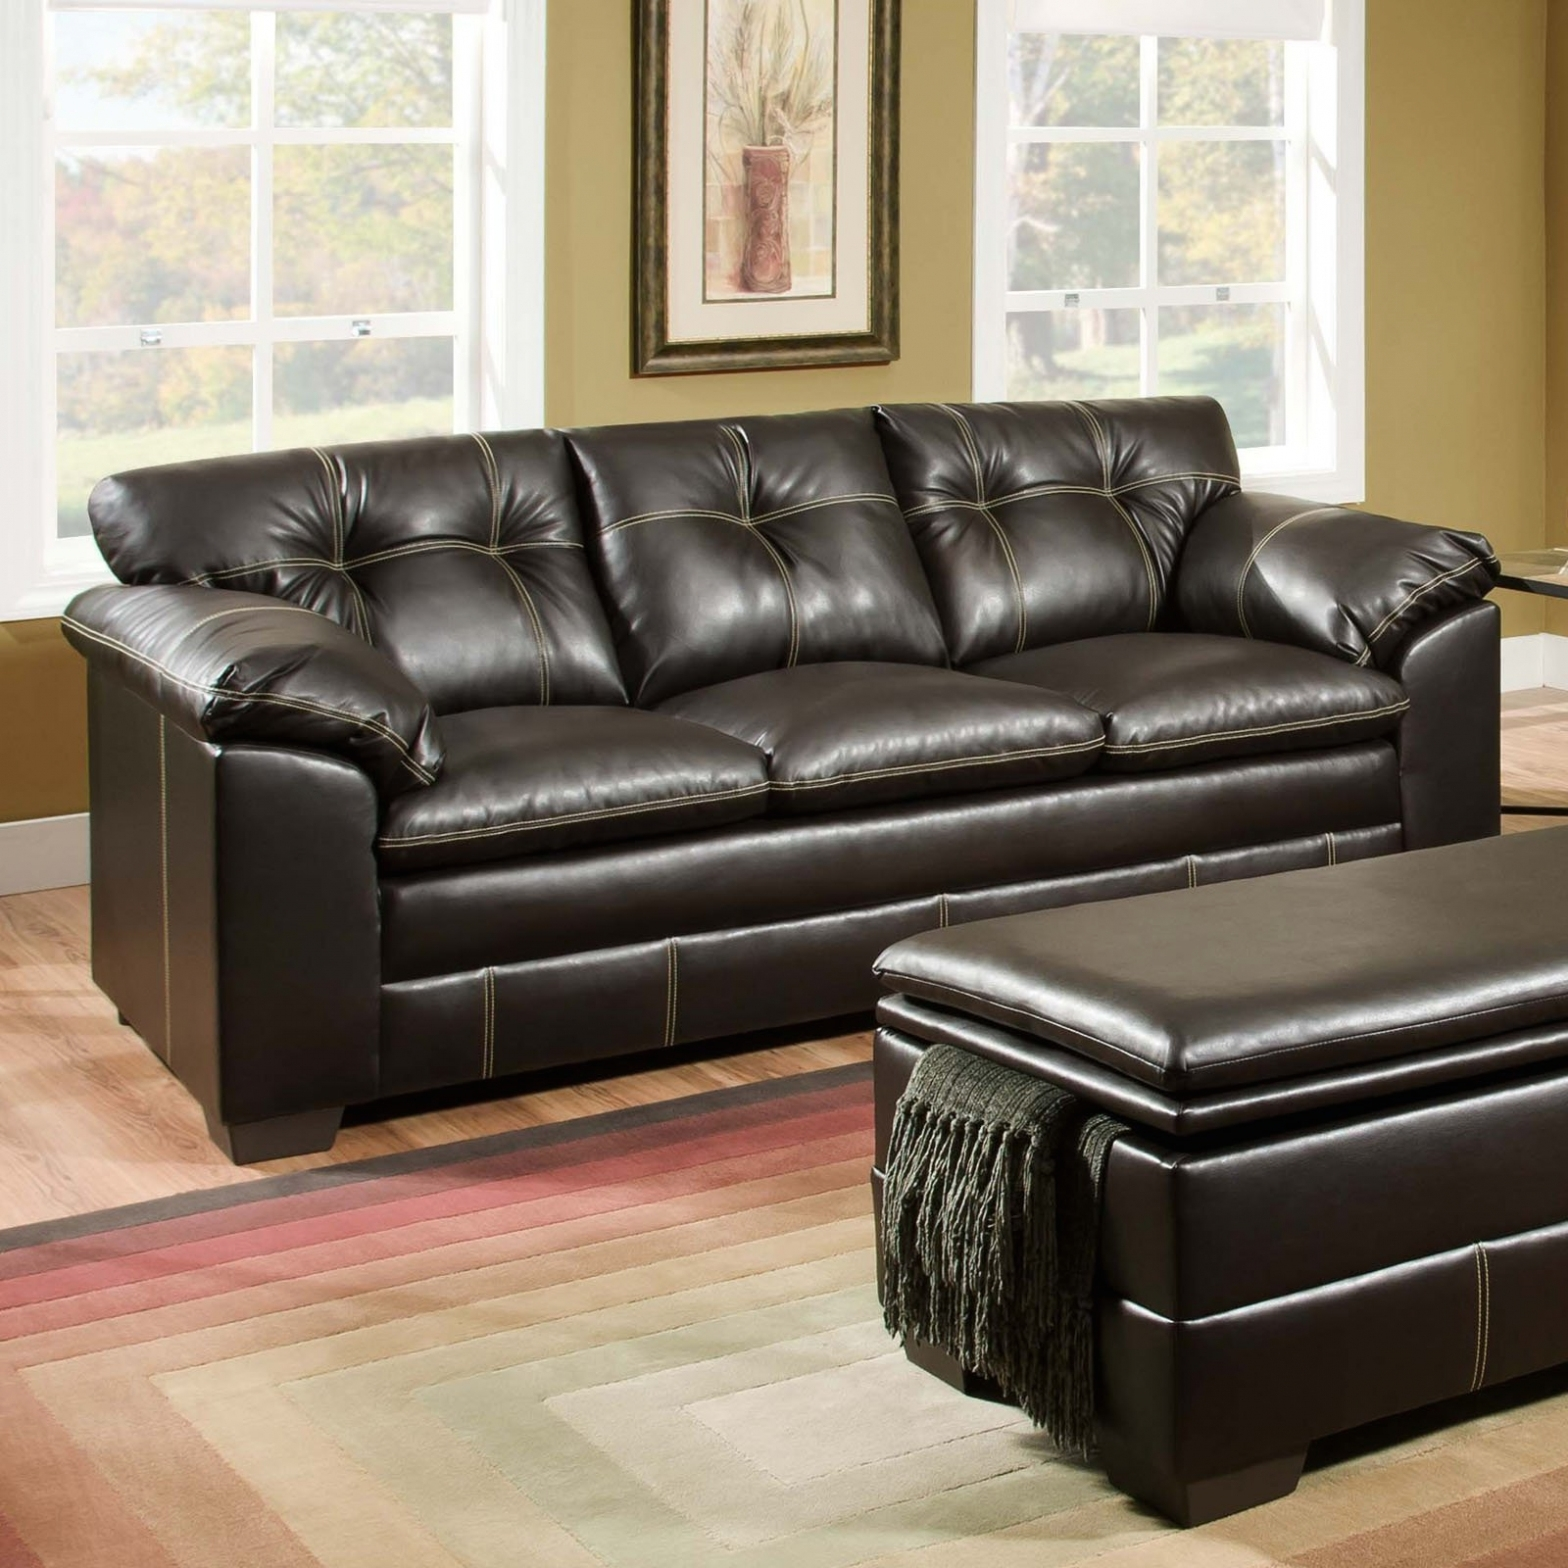 Popular Furniture: Sofas : Fabulous Leather Loveseat Recliner Sectional Throughout Sectional Sofas At Big Lots (View 12 of 20)